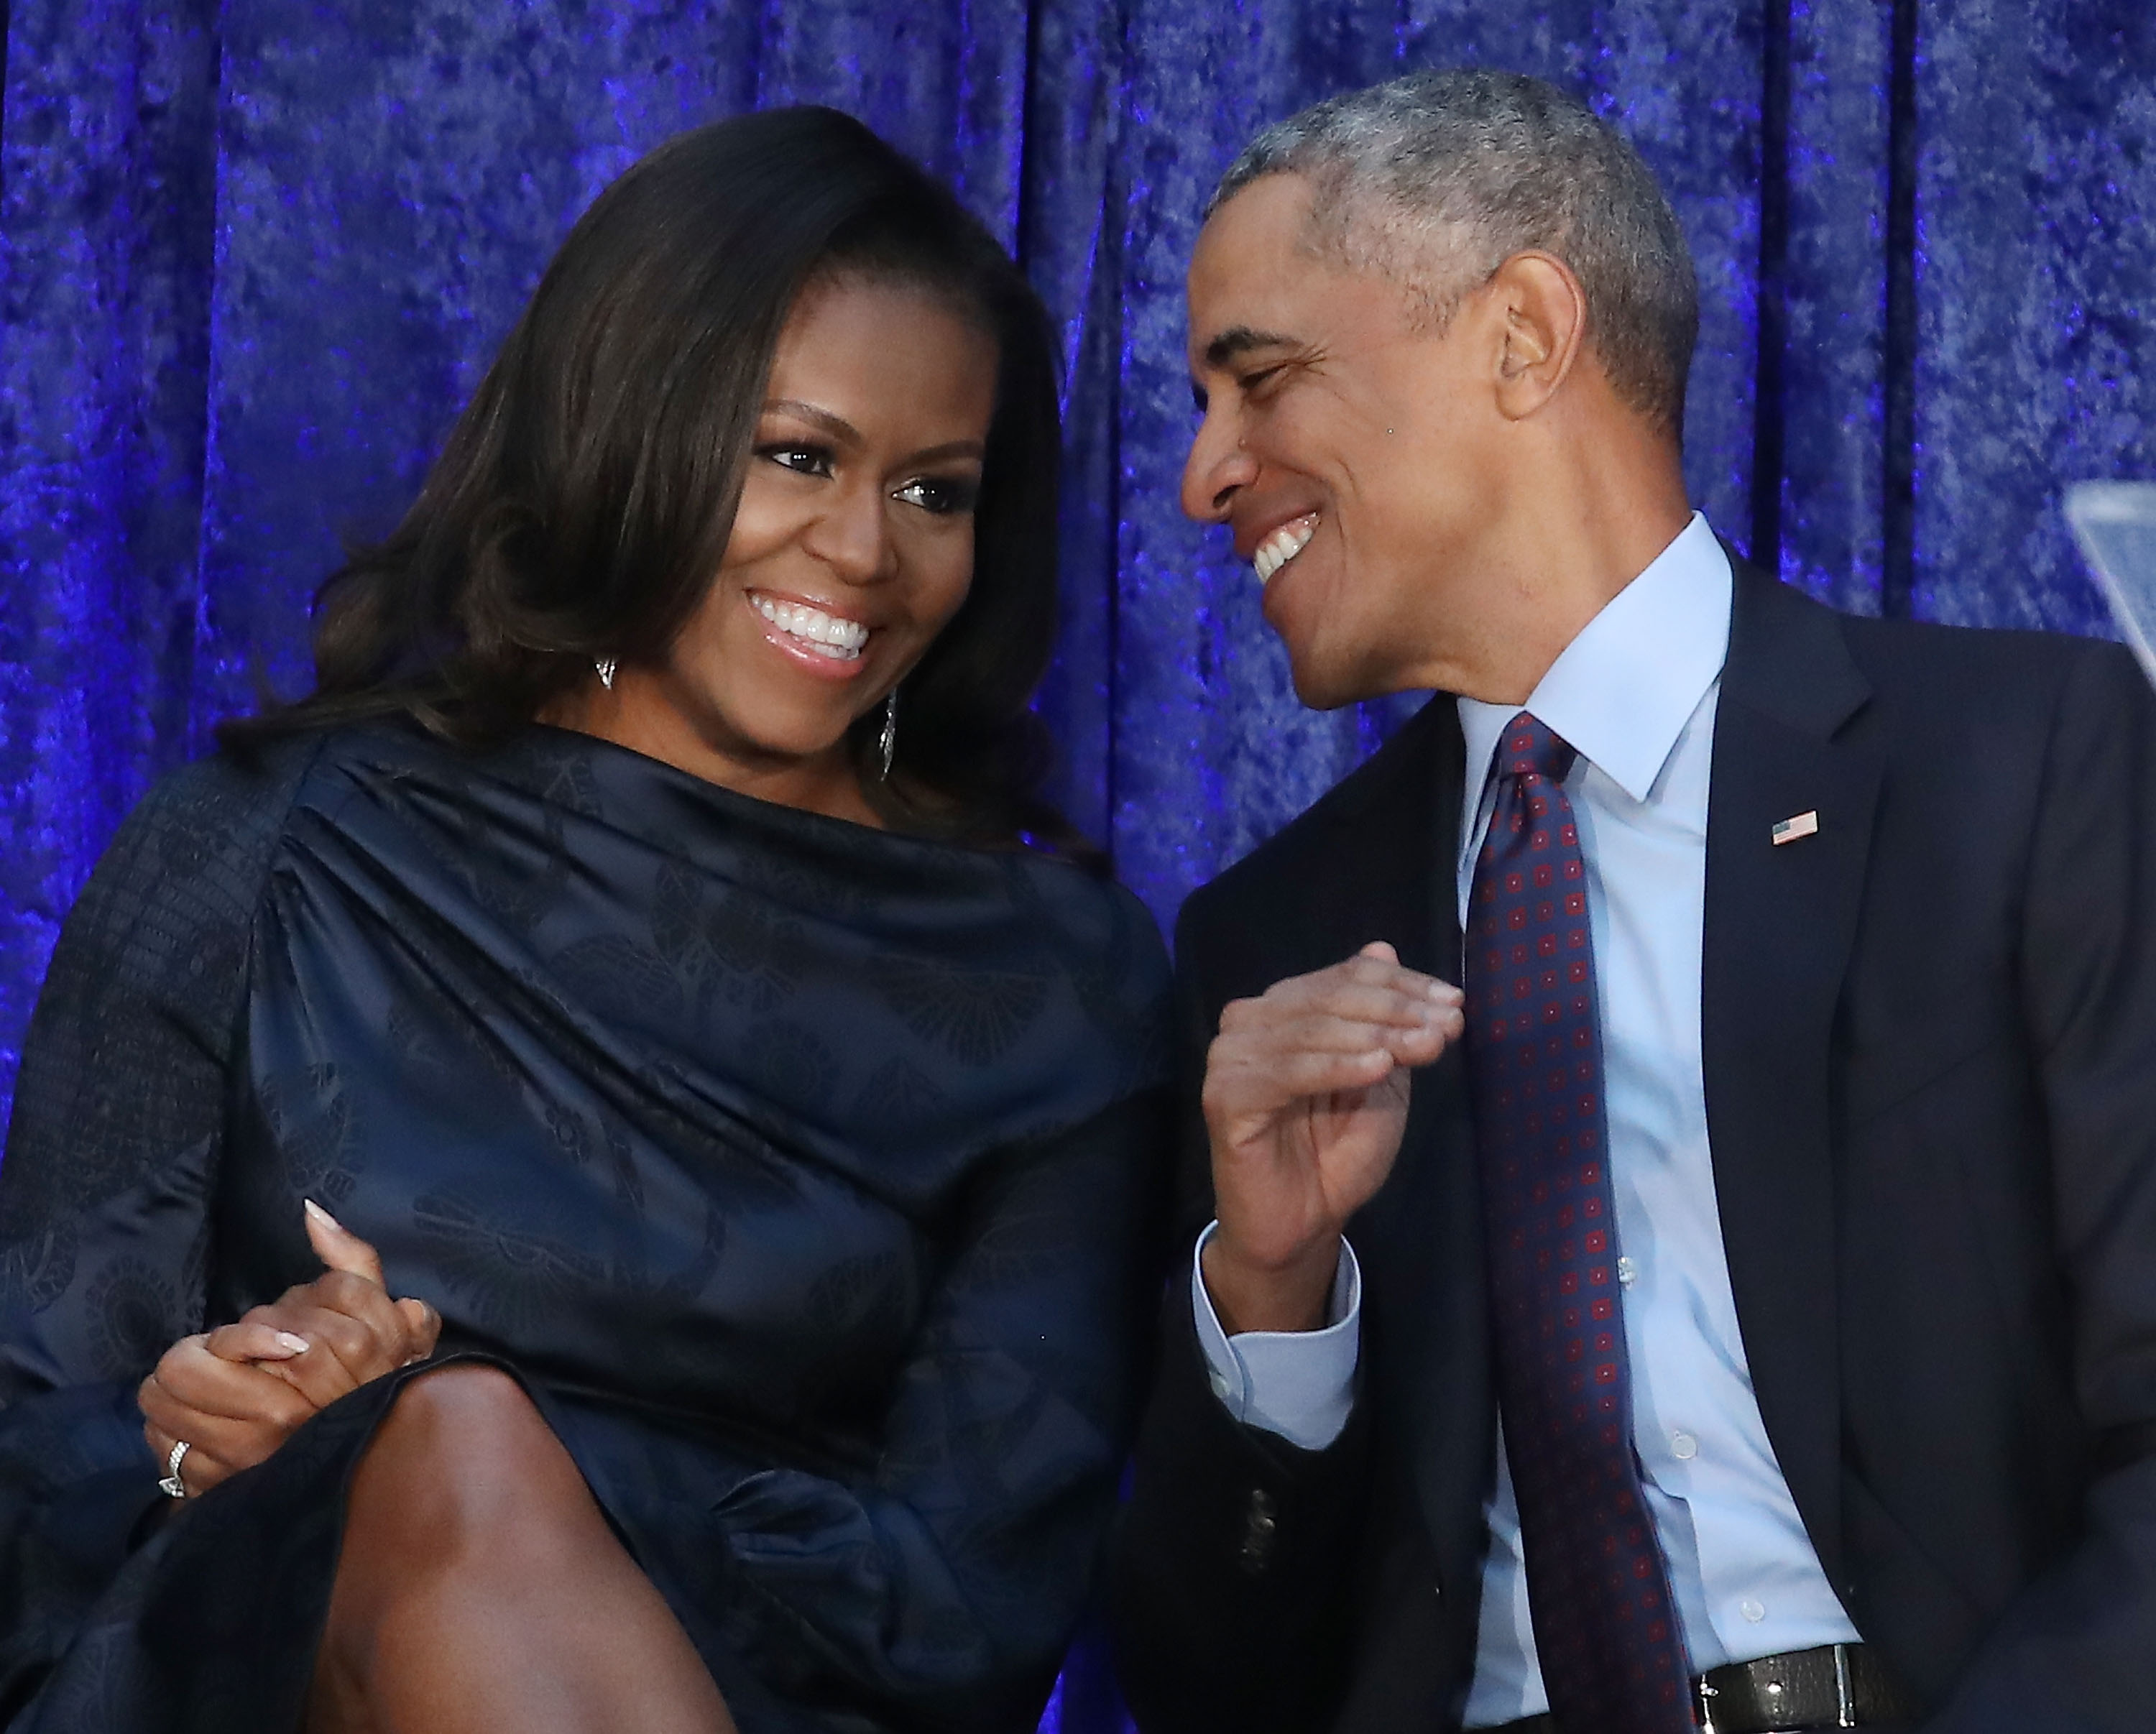 The book deal that the Obamas signed is reportedly worth $65 million (Source: Mark Wilson/Getty Images)